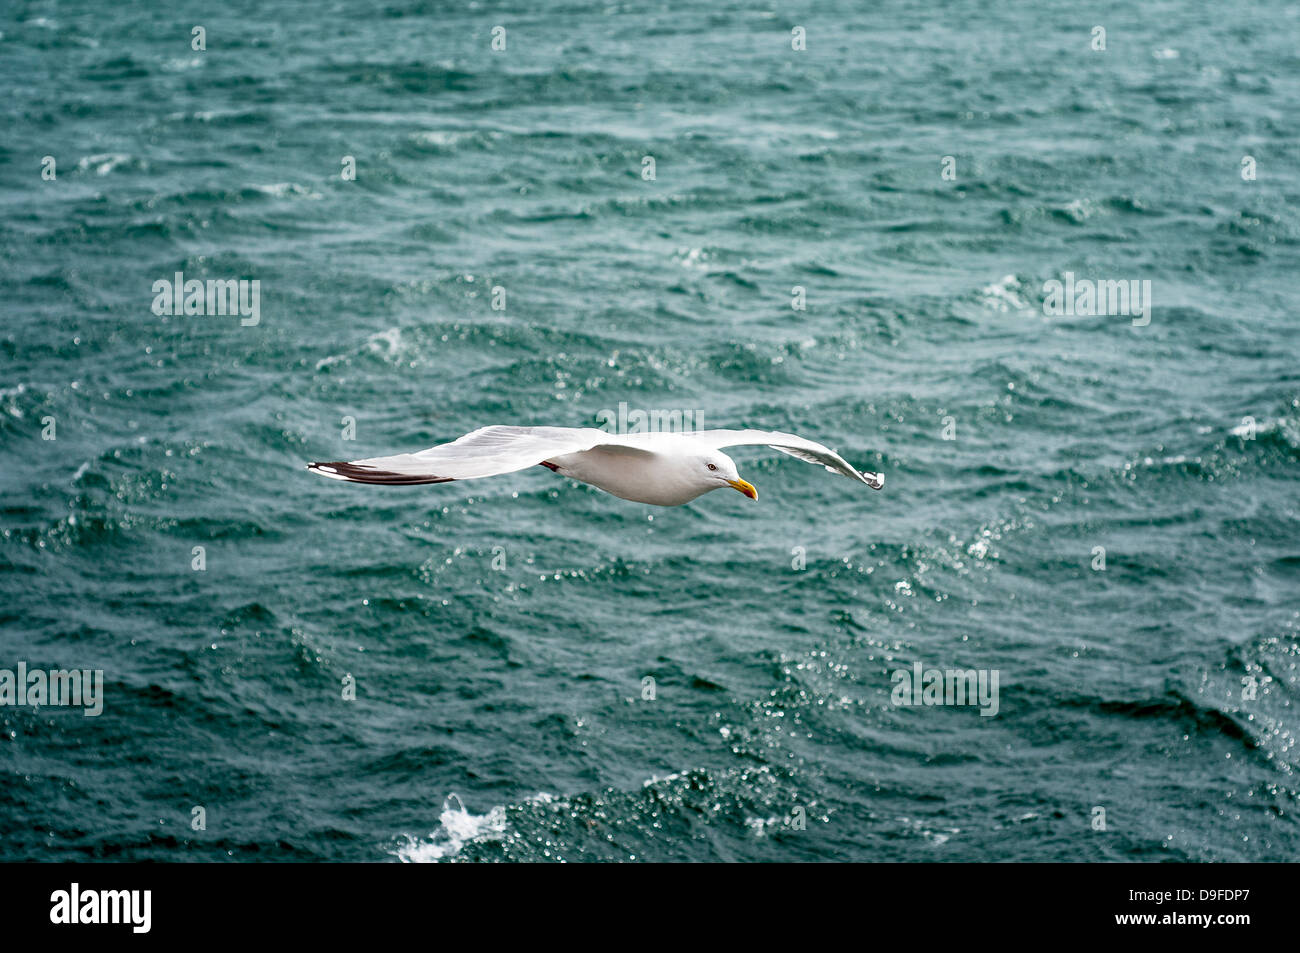 Seagull with extended wings gliding over water - Stock Image